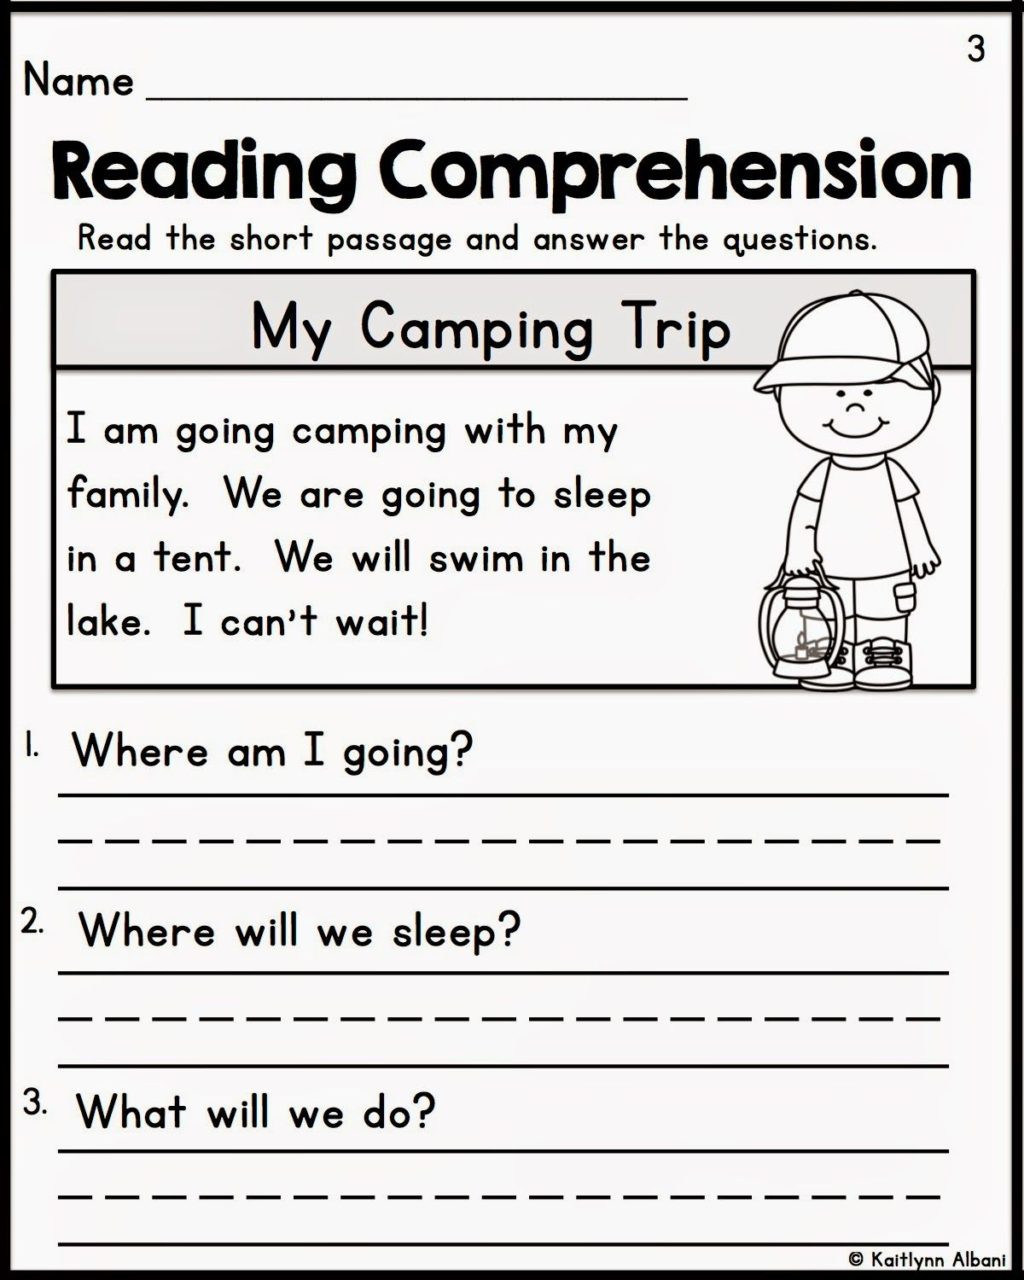 Reading Comprehension Worksheets Kindergarten Worksheet Printable Kindergarten Worksheets Reading